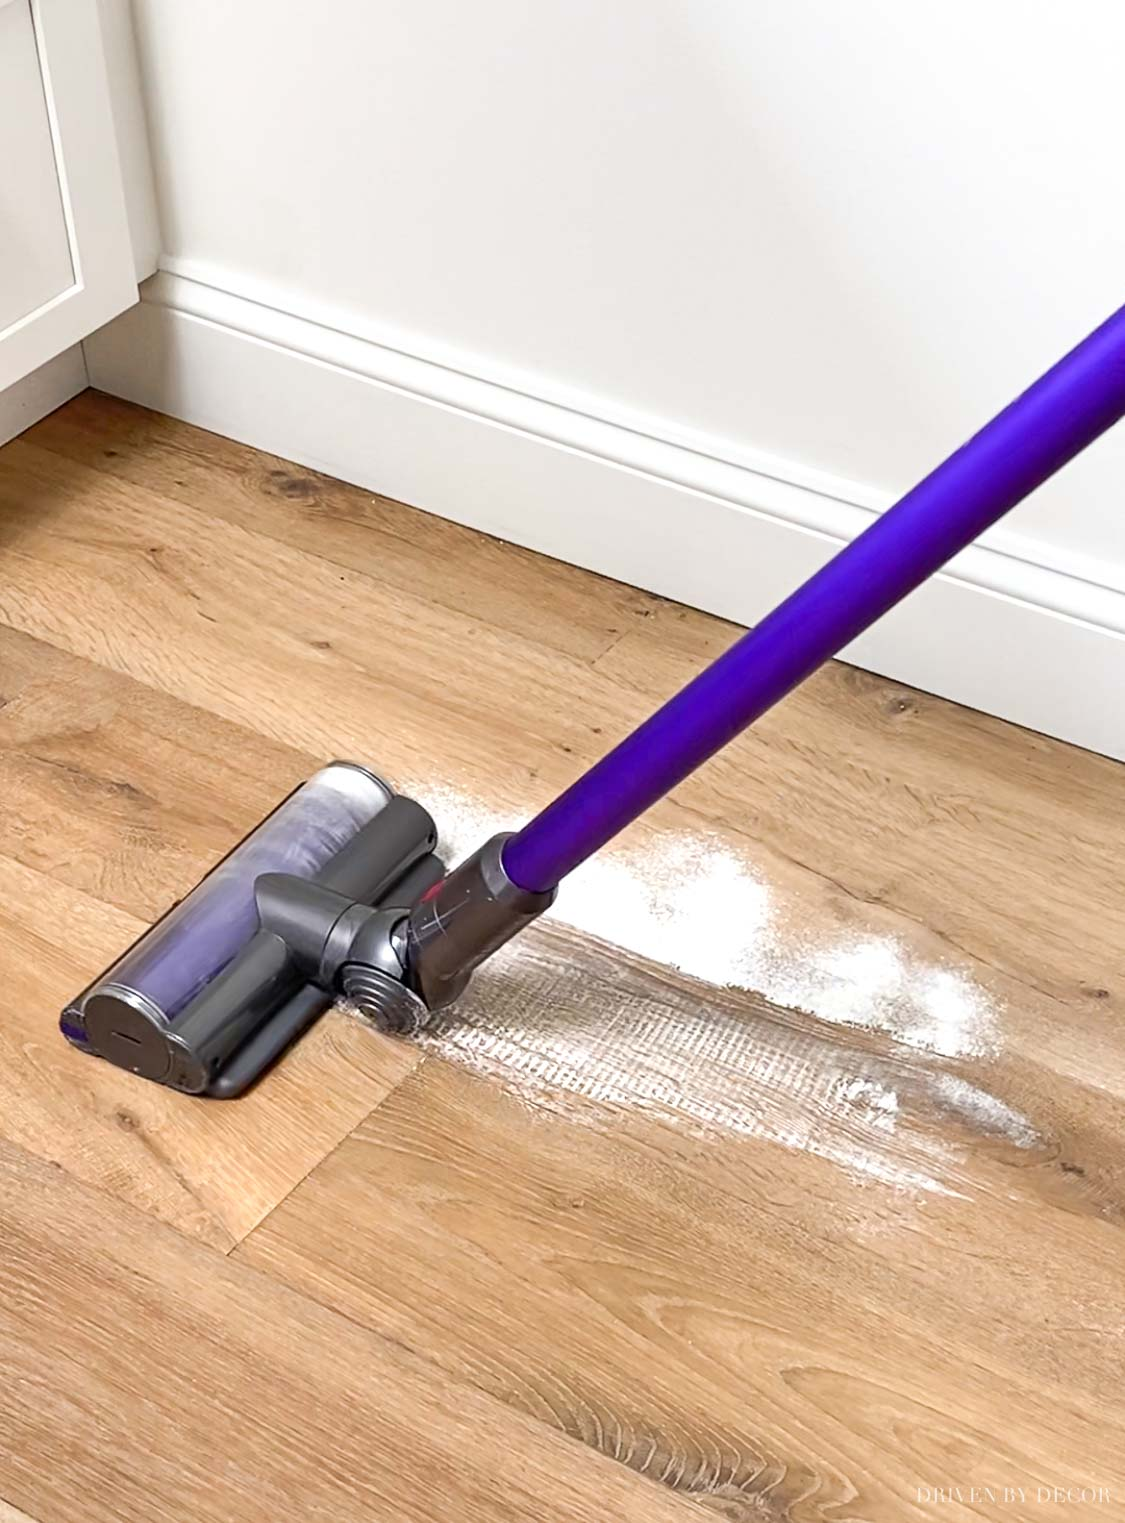 Shark vs. Dyson - comparing the suction power of these cordless vacuums!